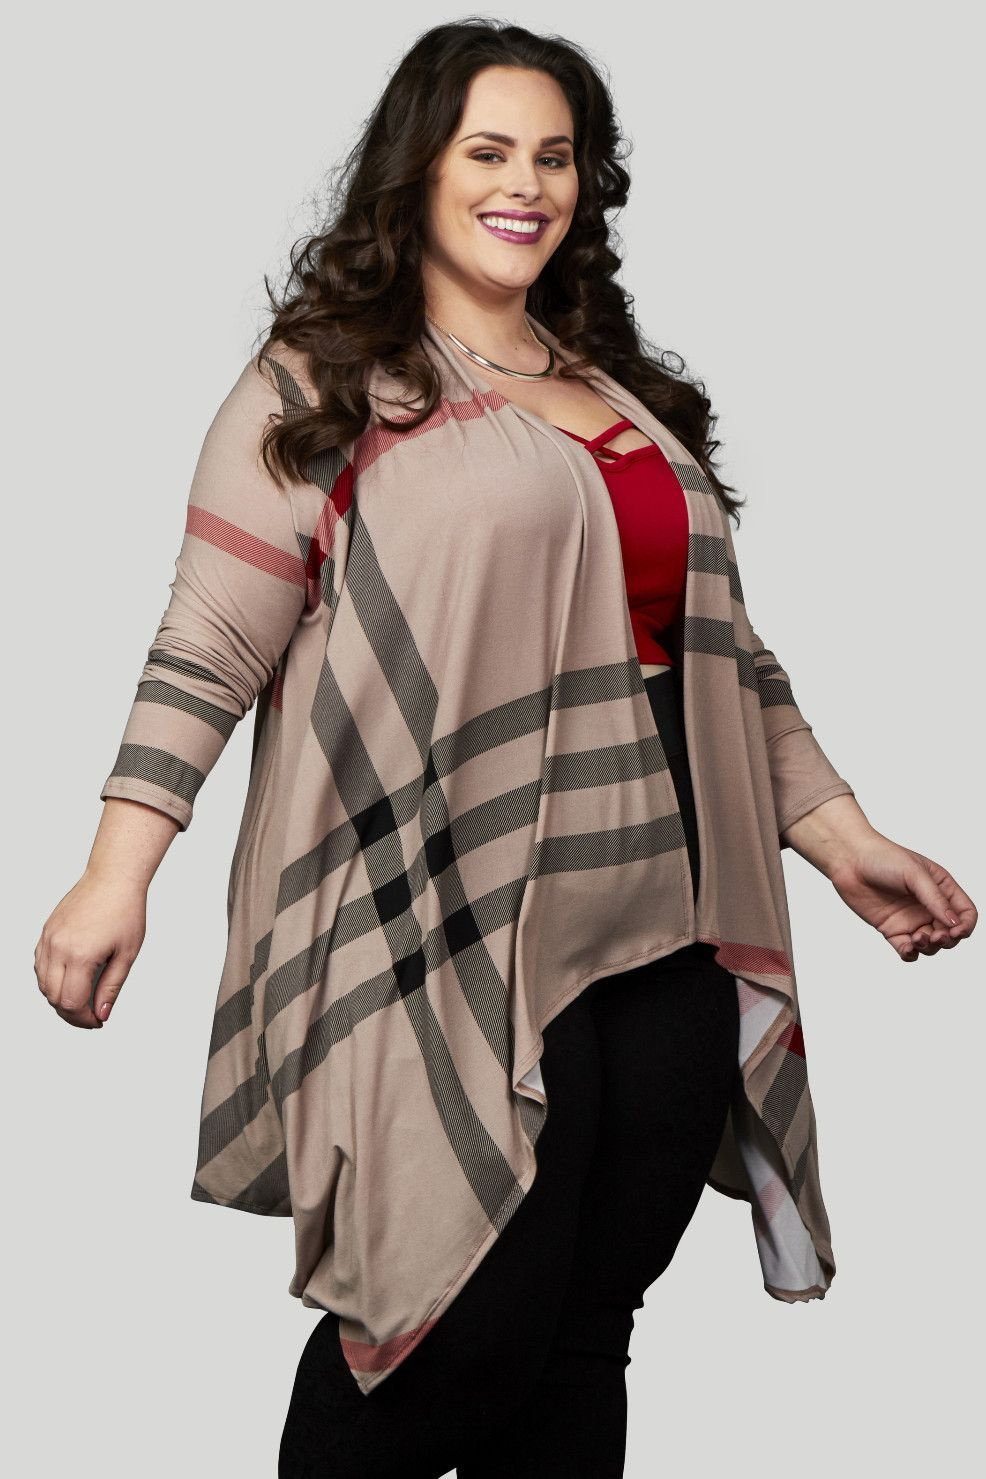 Pippa Plaid Waterfall Cardigan - Taupe/Black | Products, Taupe and ...